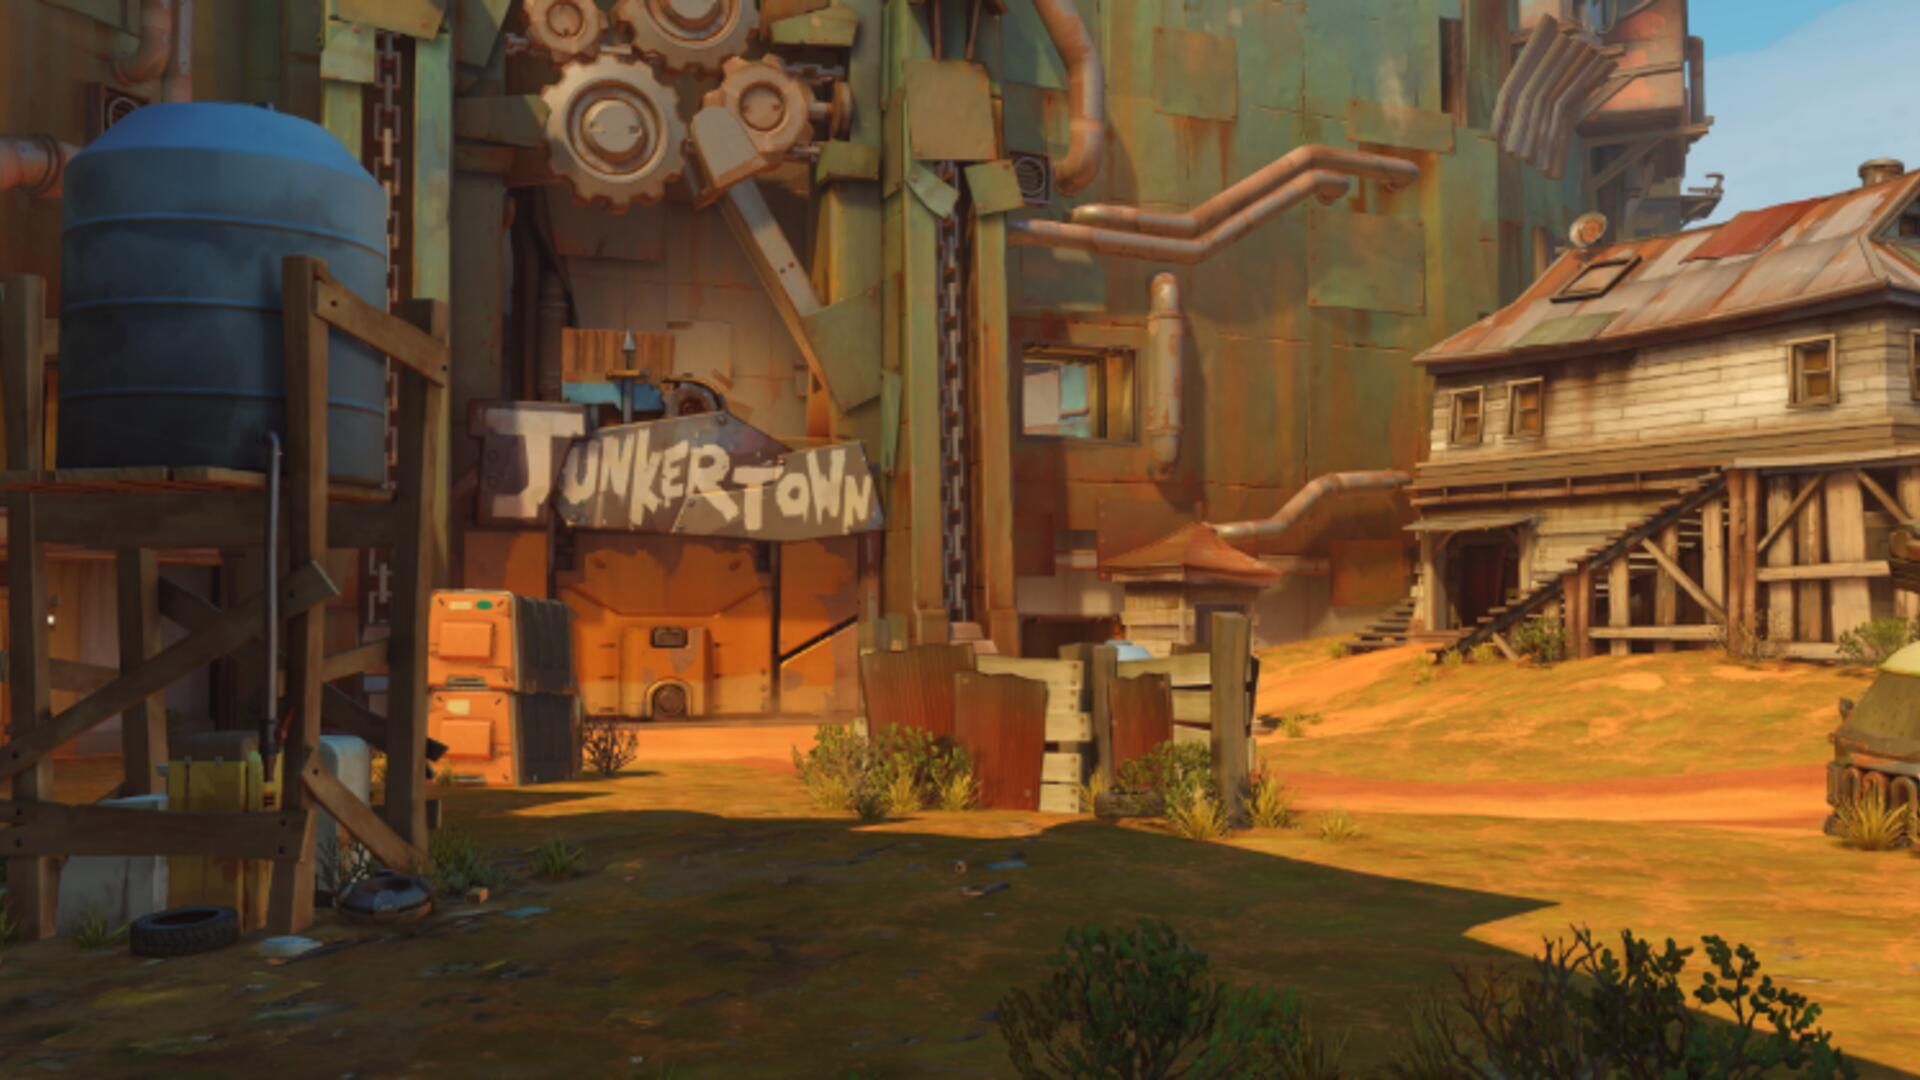 Overwatch Adds Deathmatch, Junkertown, and a Reporting System in Today's Updates